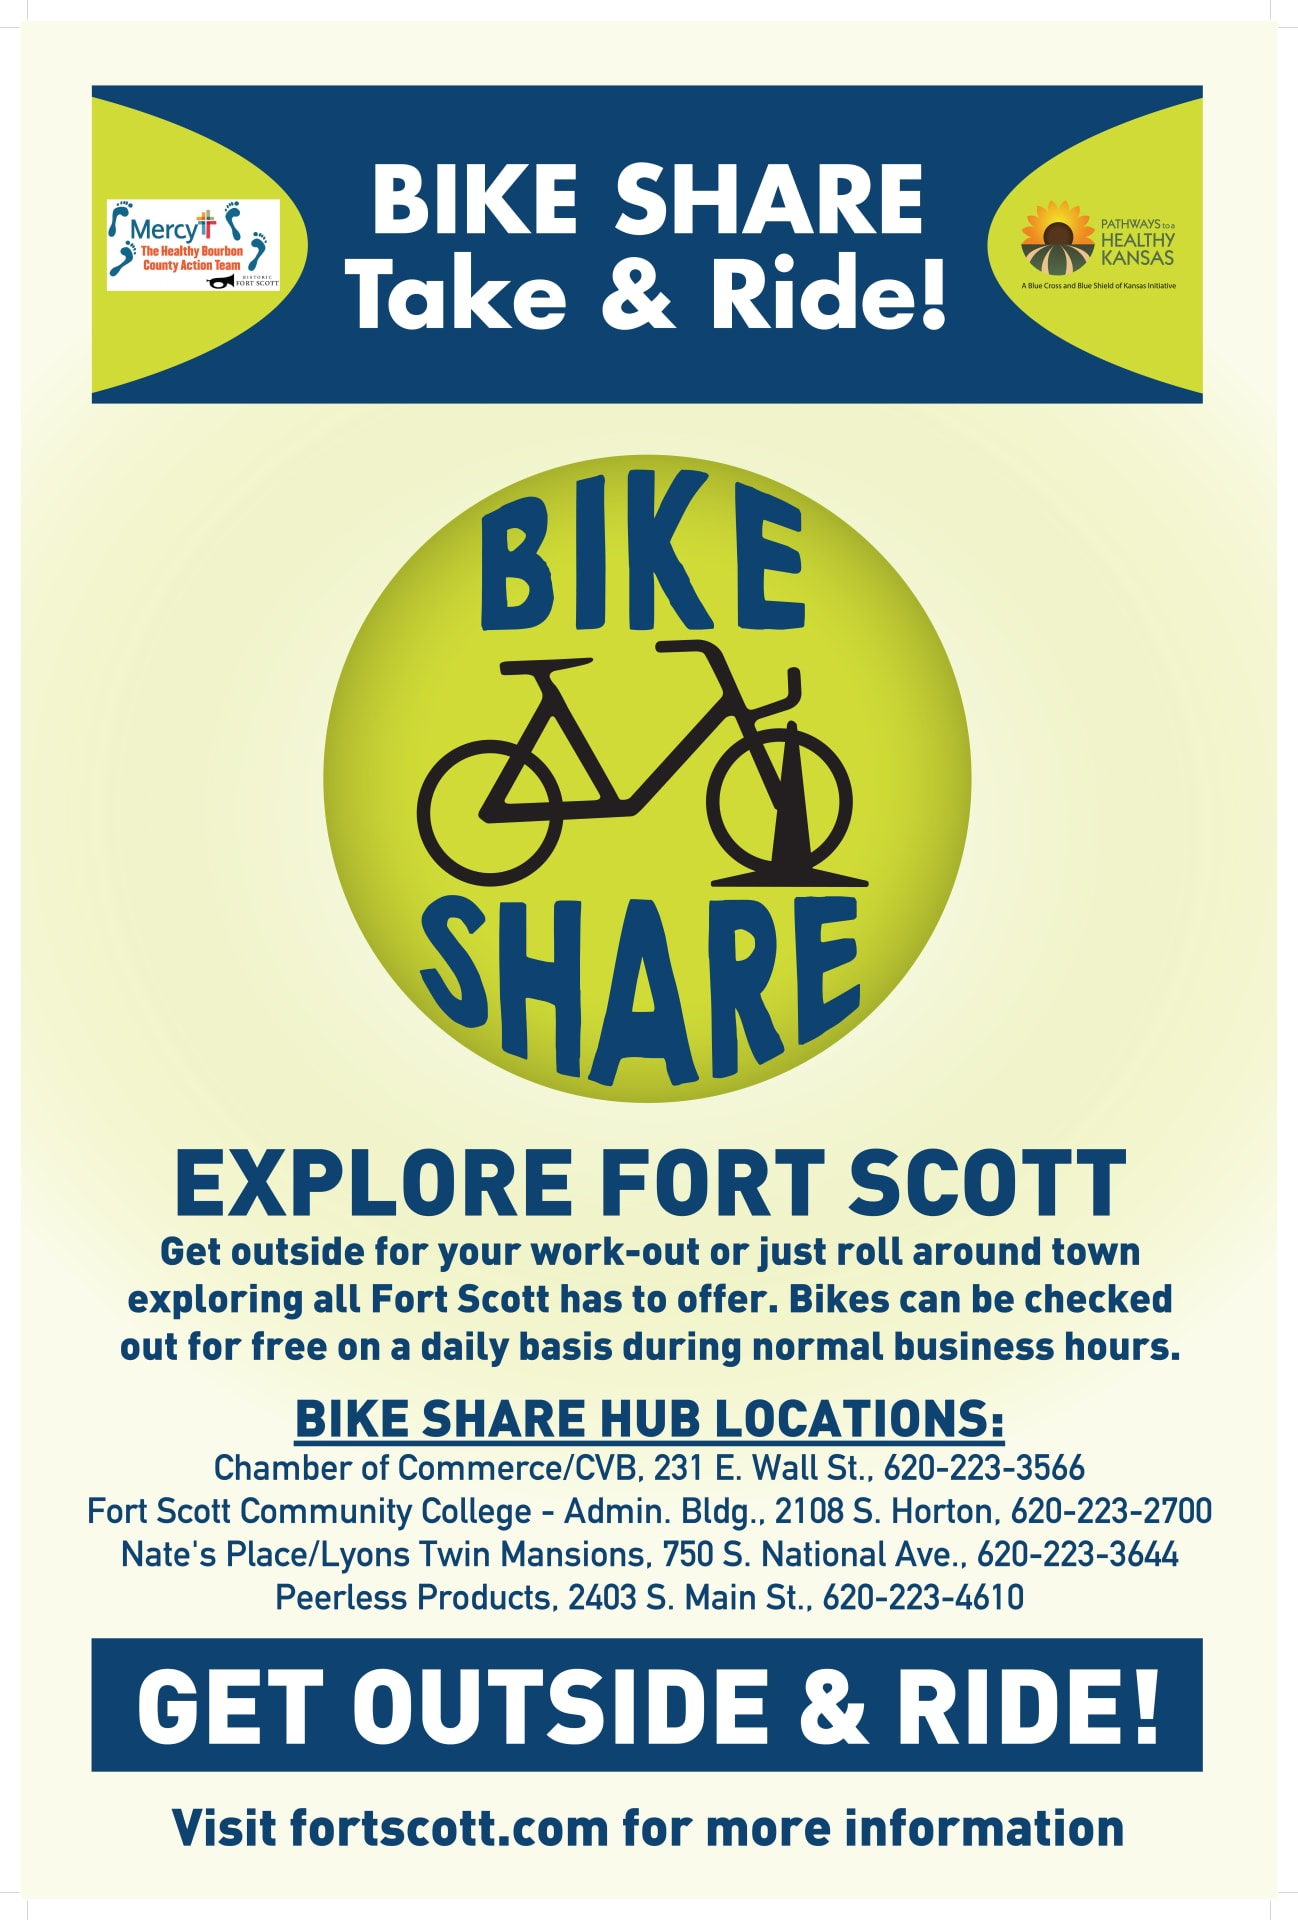 Bike Share Program - Fort Scott Kansas